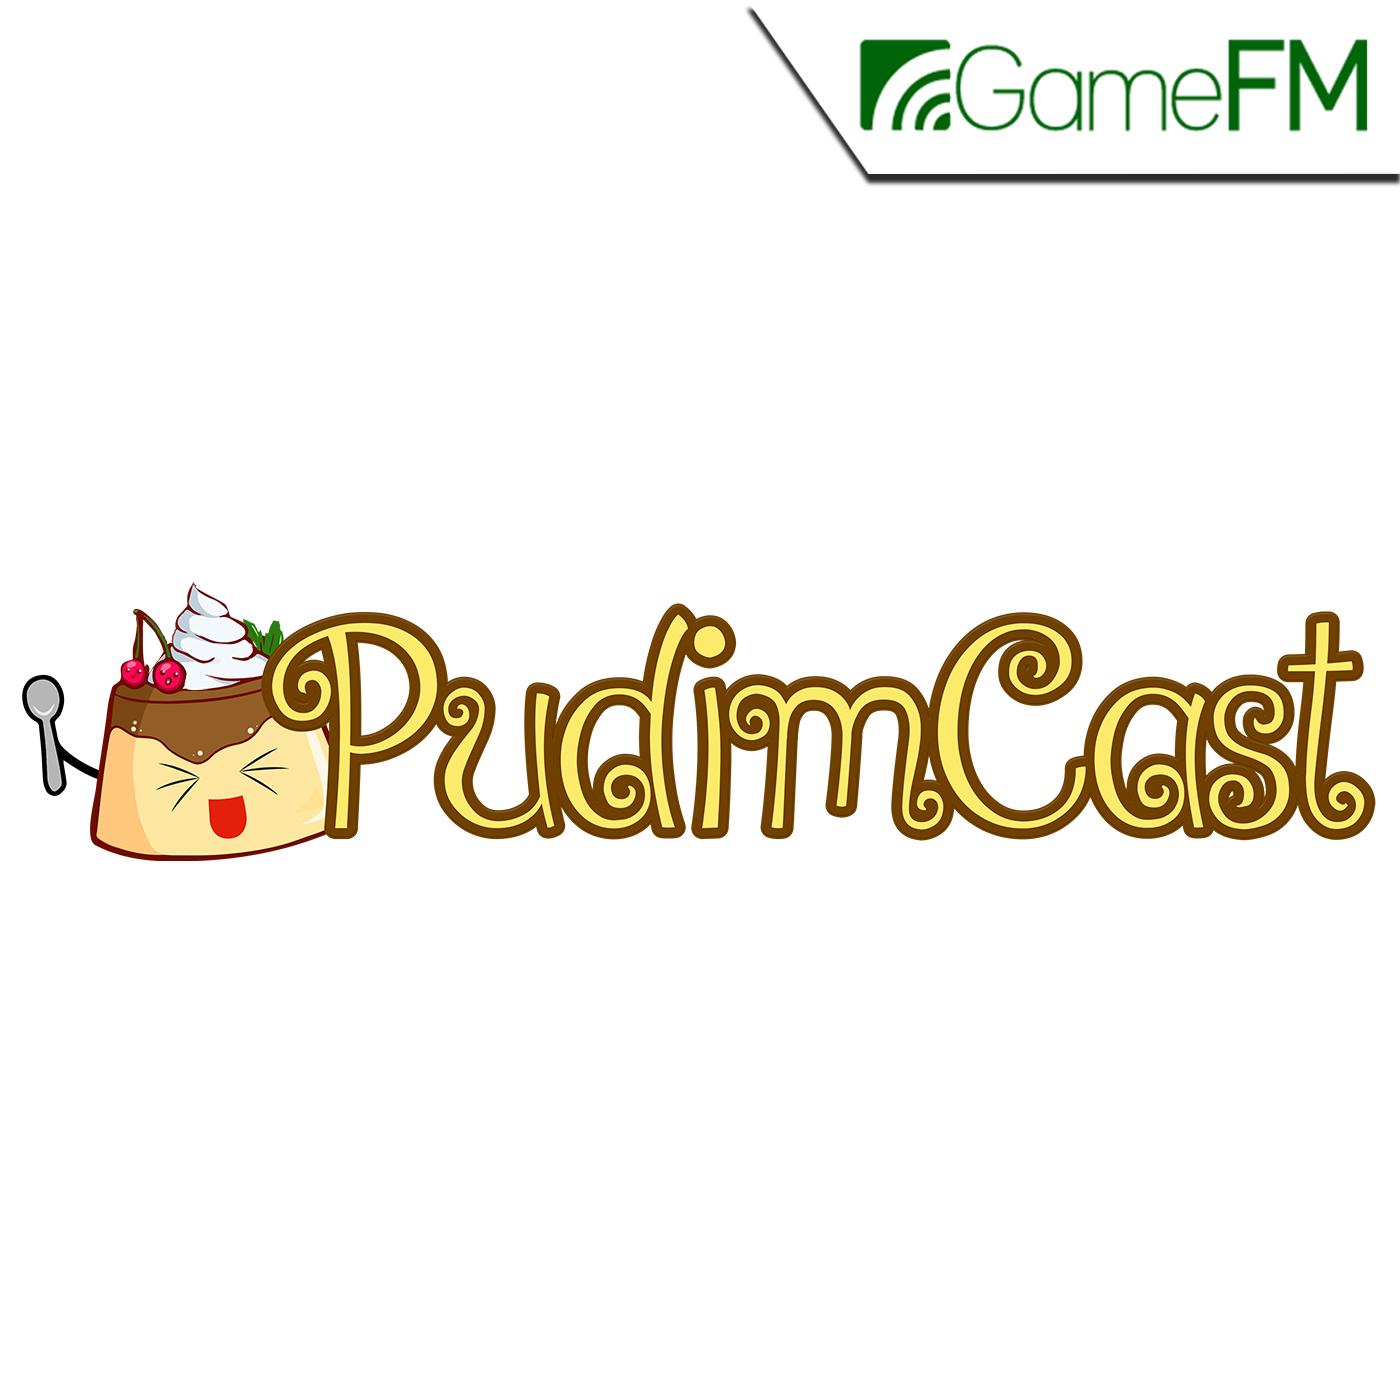 GameFM » PudimCast